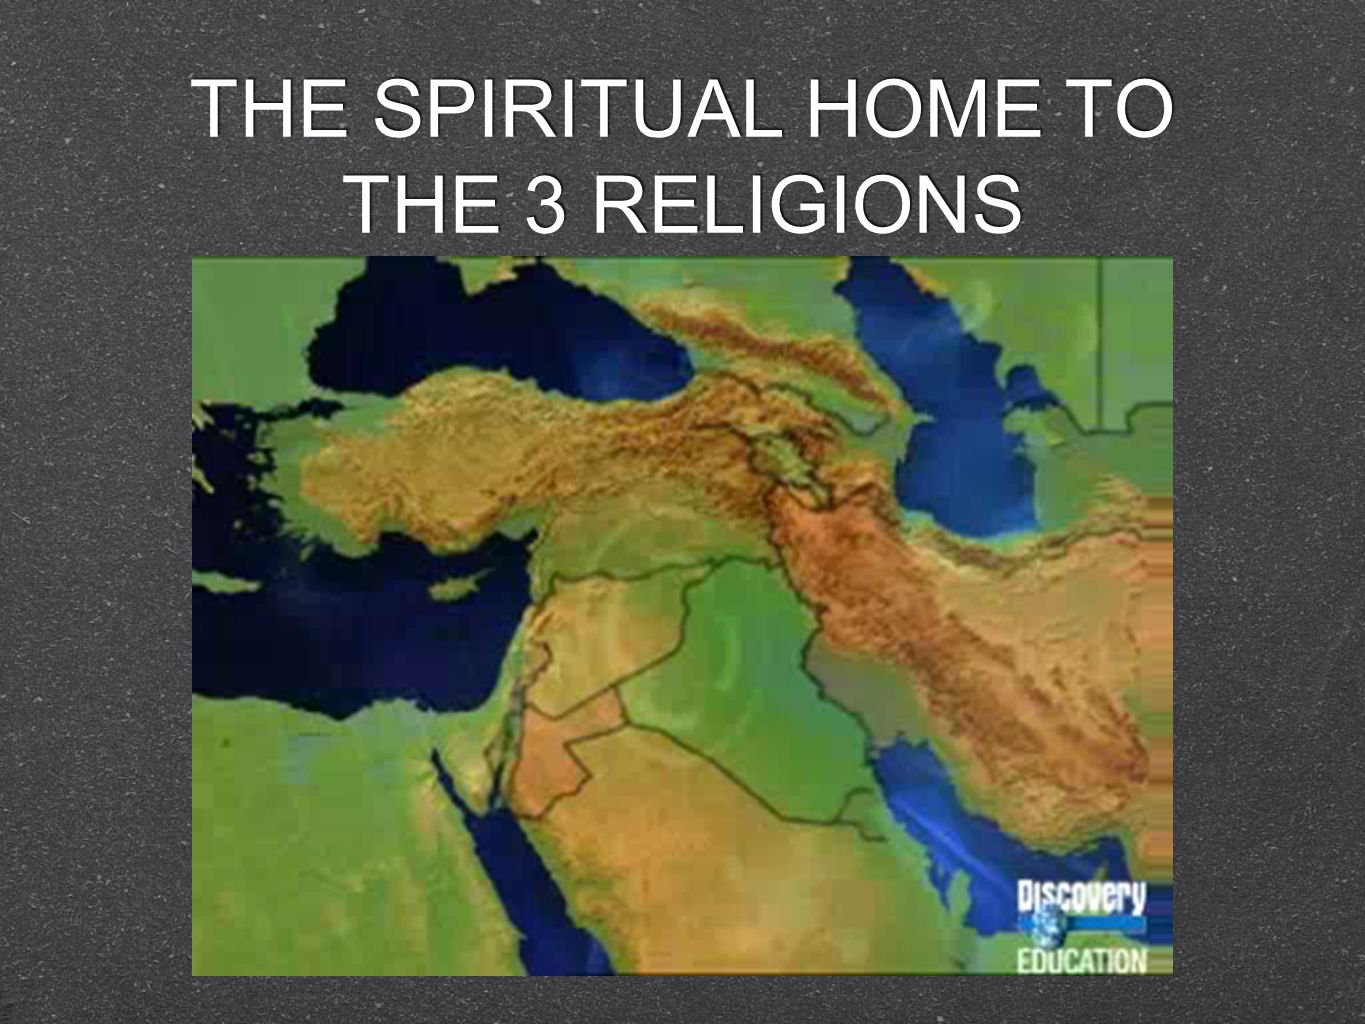 THE SPIRITUAL HOME TO THE 3 RELIGIONS